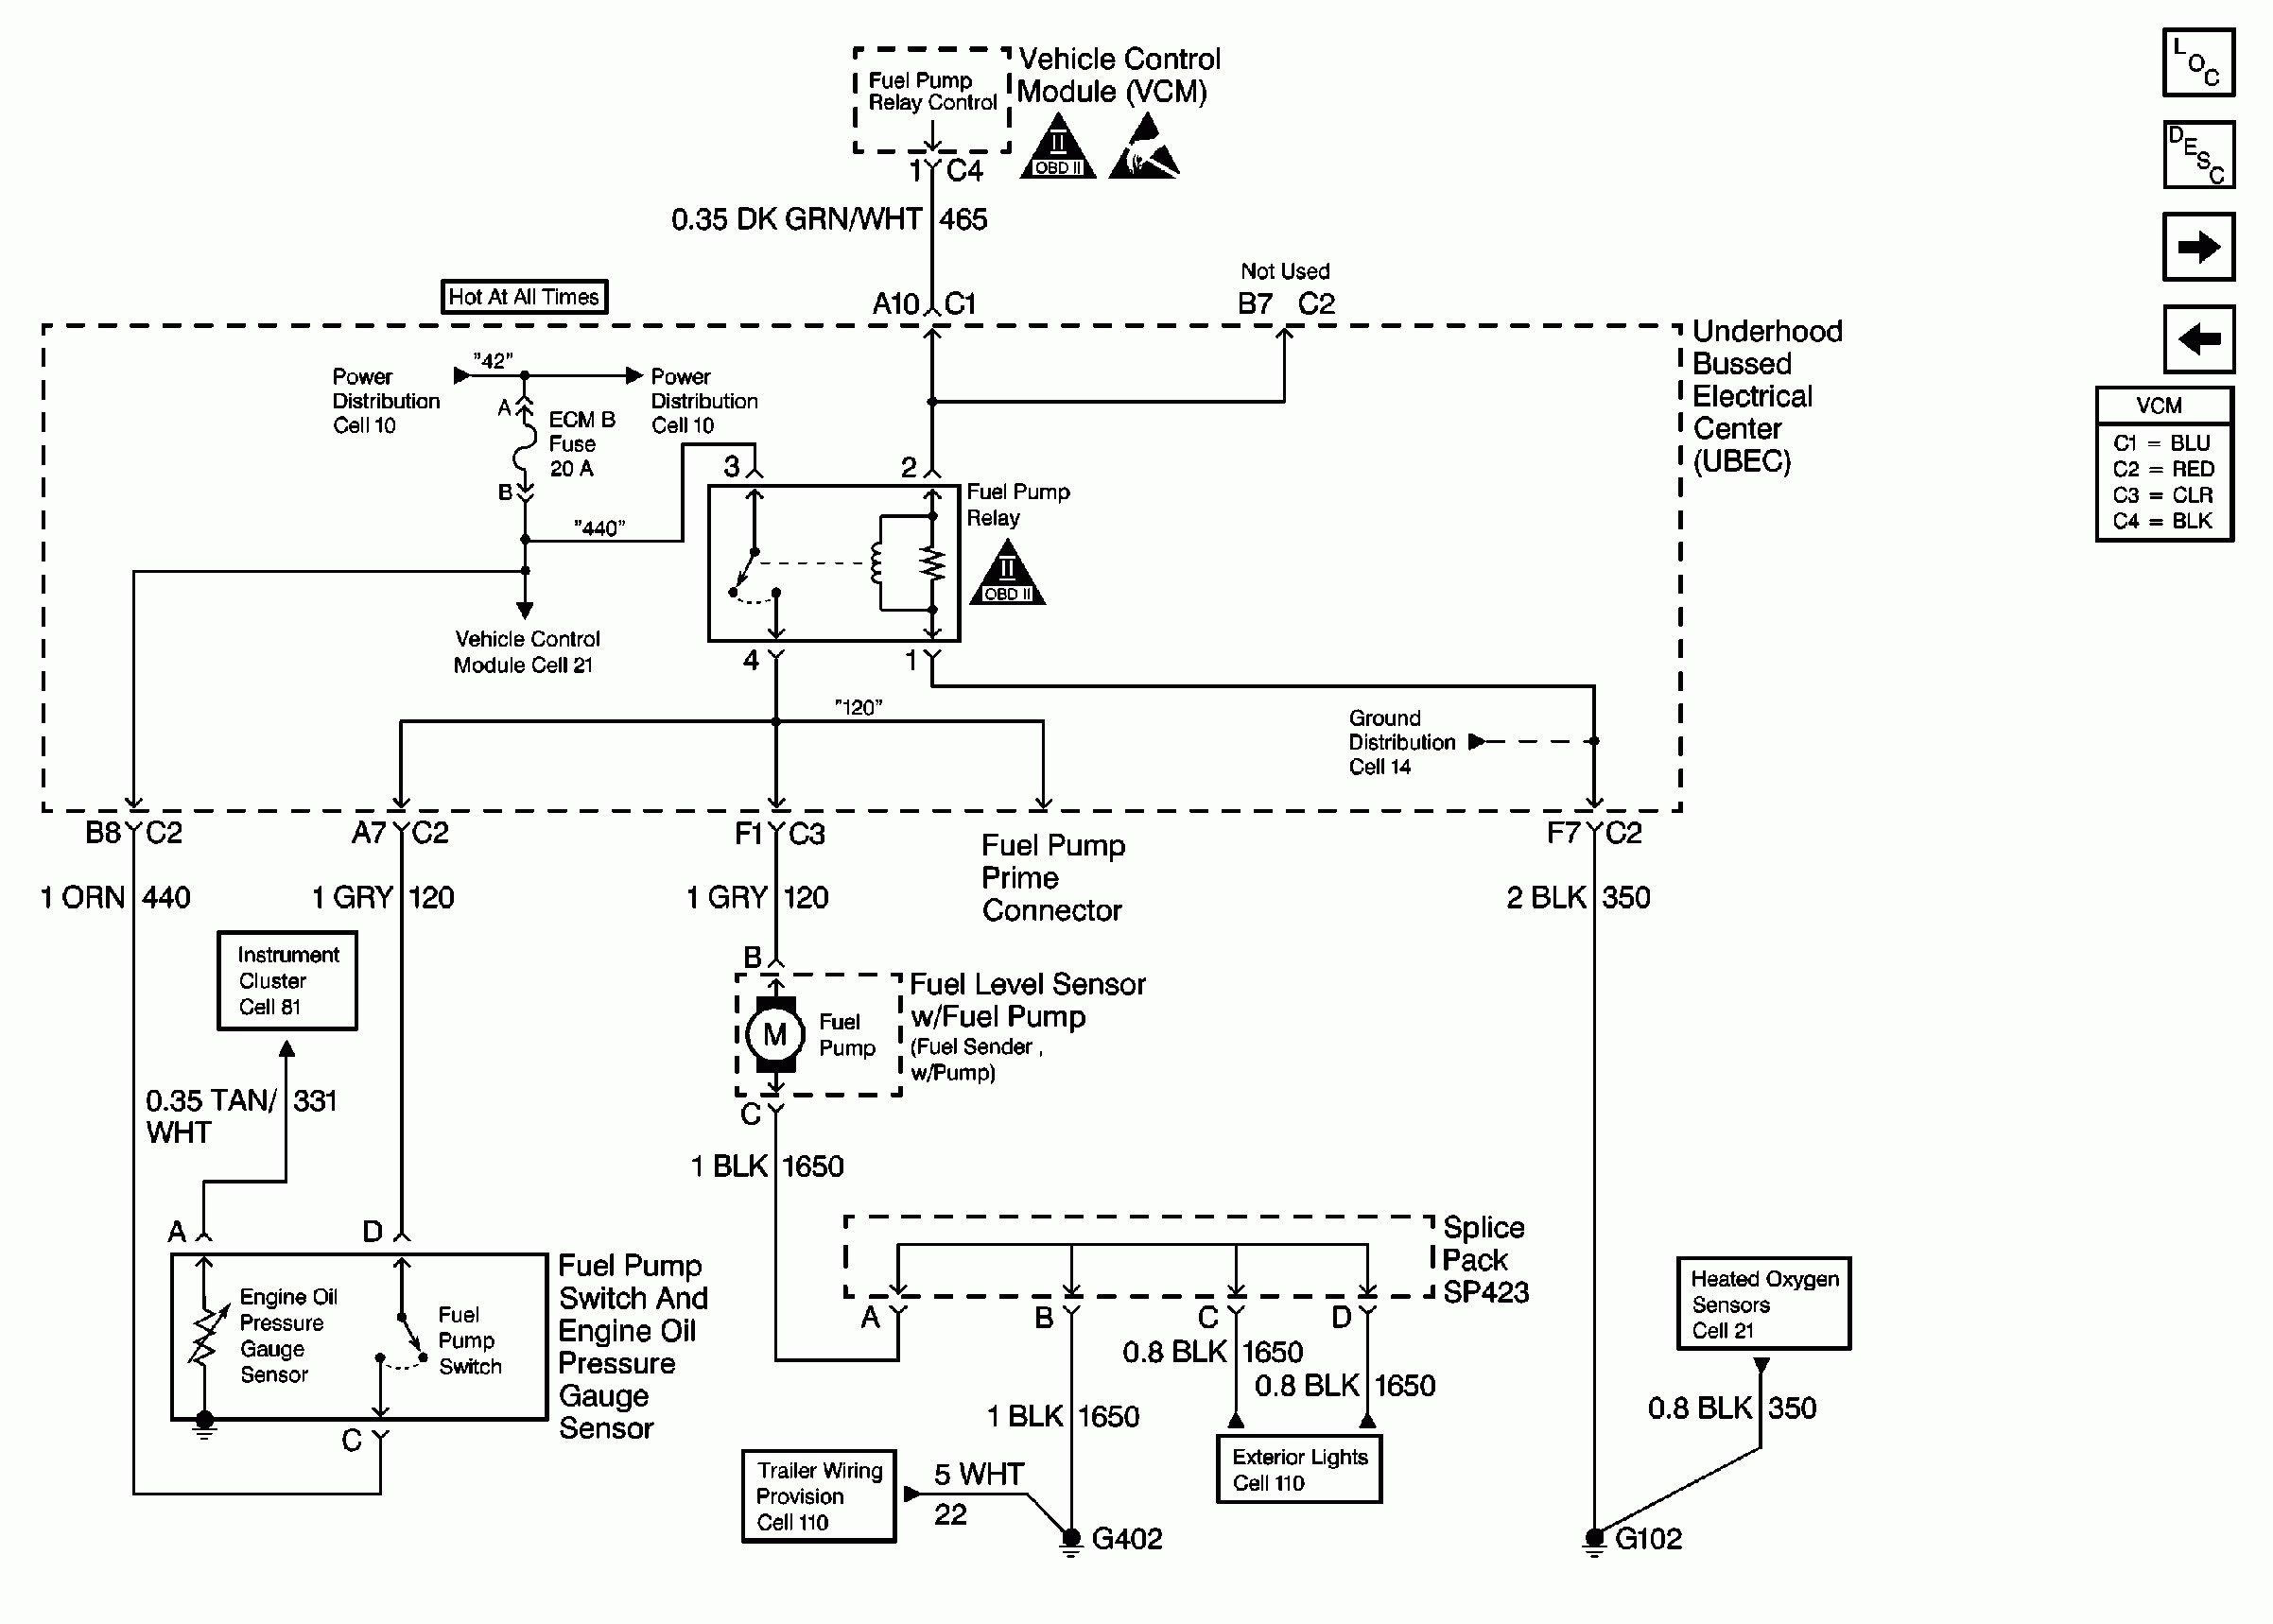 2000 s10 fuel pump wiring daigram diagram data schema wiring diagram as well chevy truck fuel pump wiring further 84 chevy [ 2404 x 1718 Pixel ]